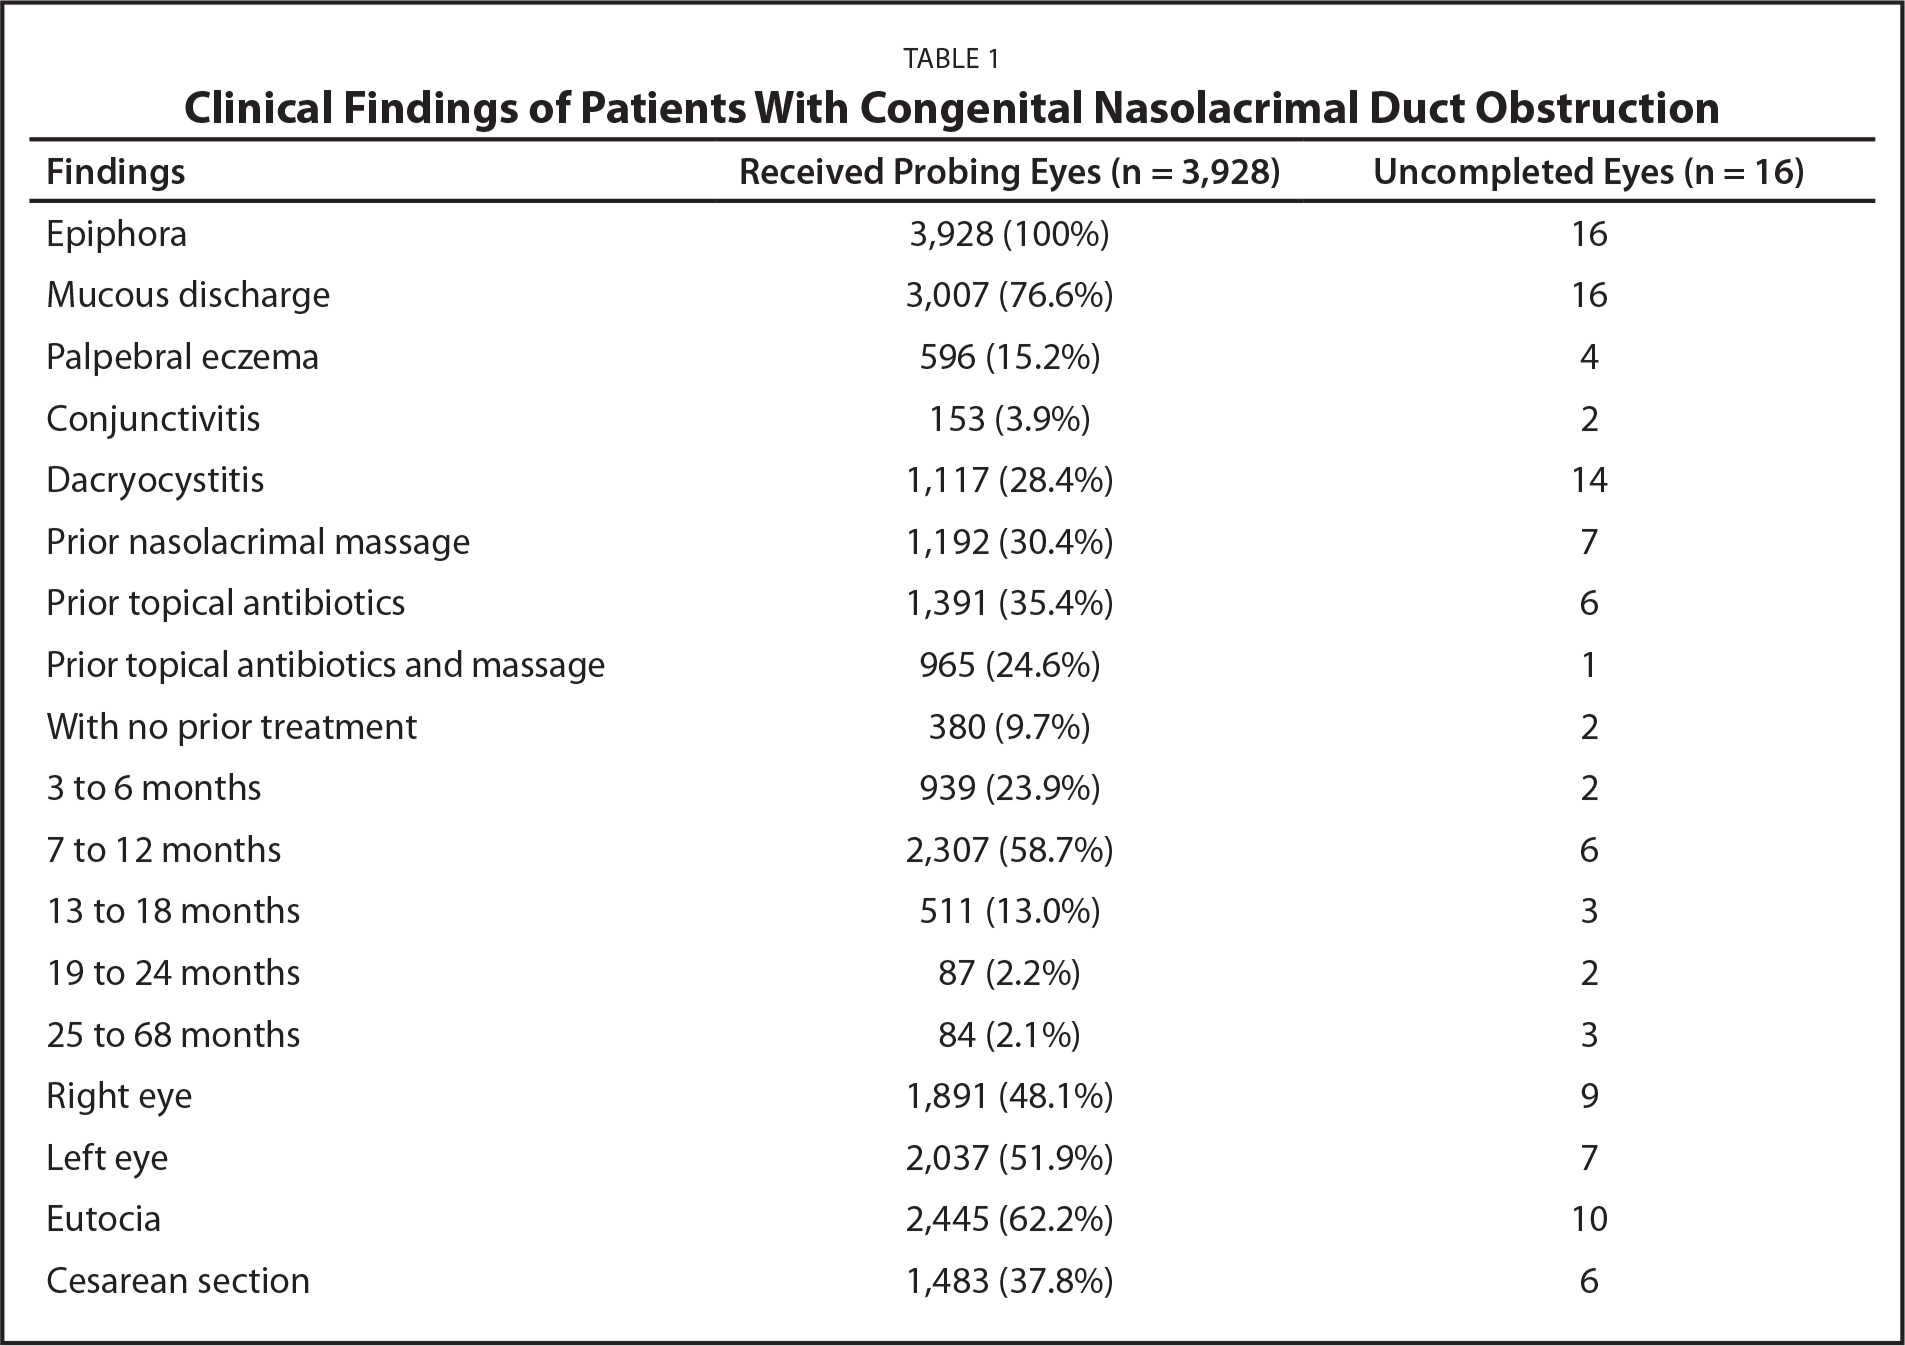 Clinical Findings of Patients With Congenital Nasolacrimal Duct Obstruction